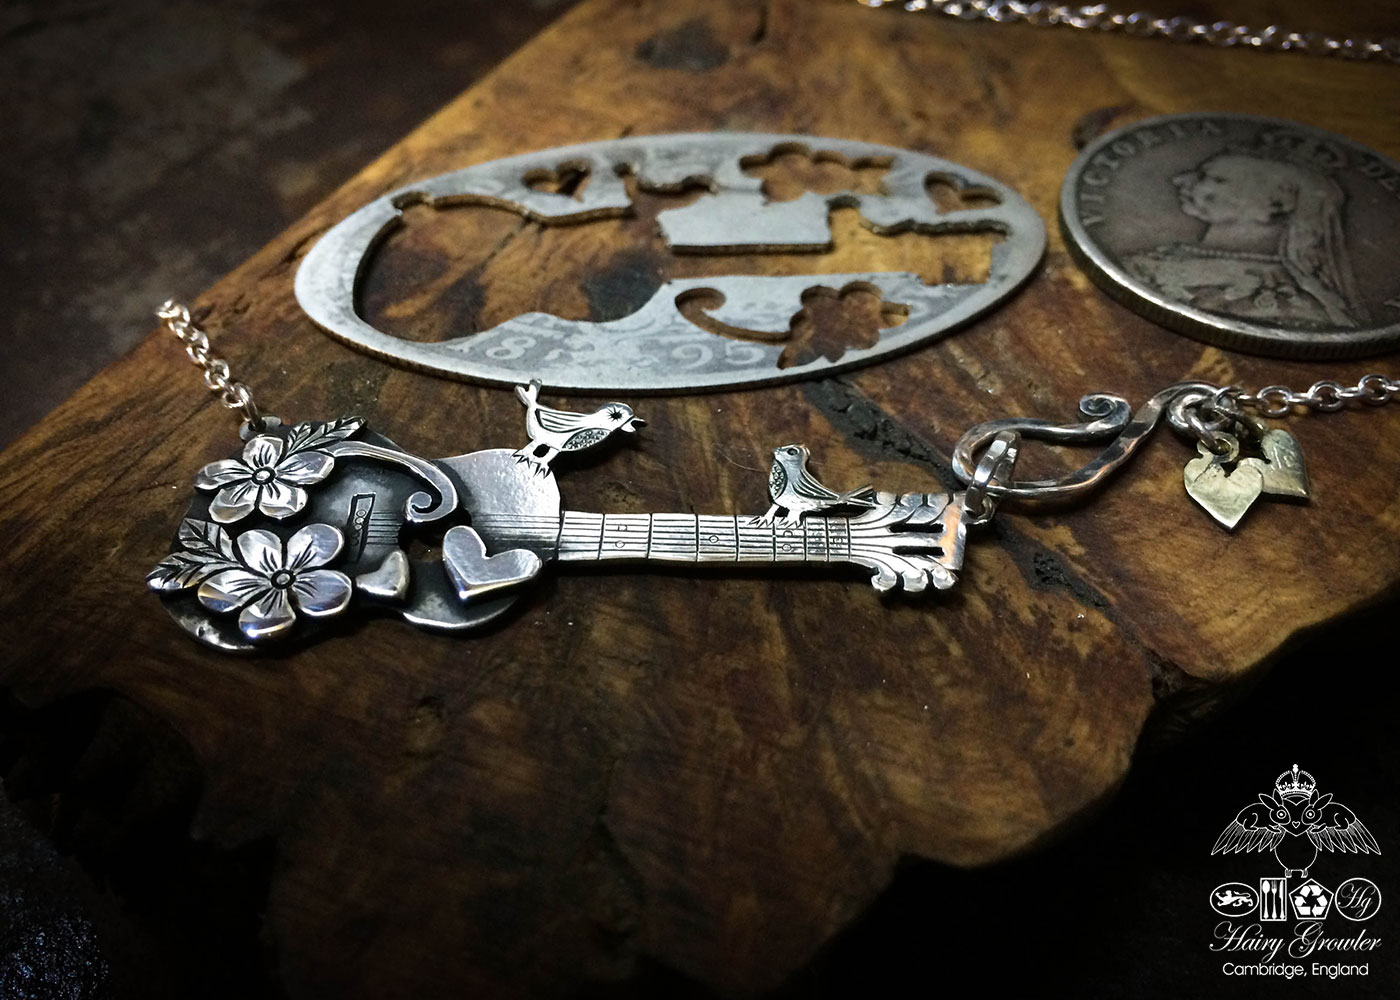 Handmade and upcycled sterling silver bird guitar necklace based on this silver Florin coin